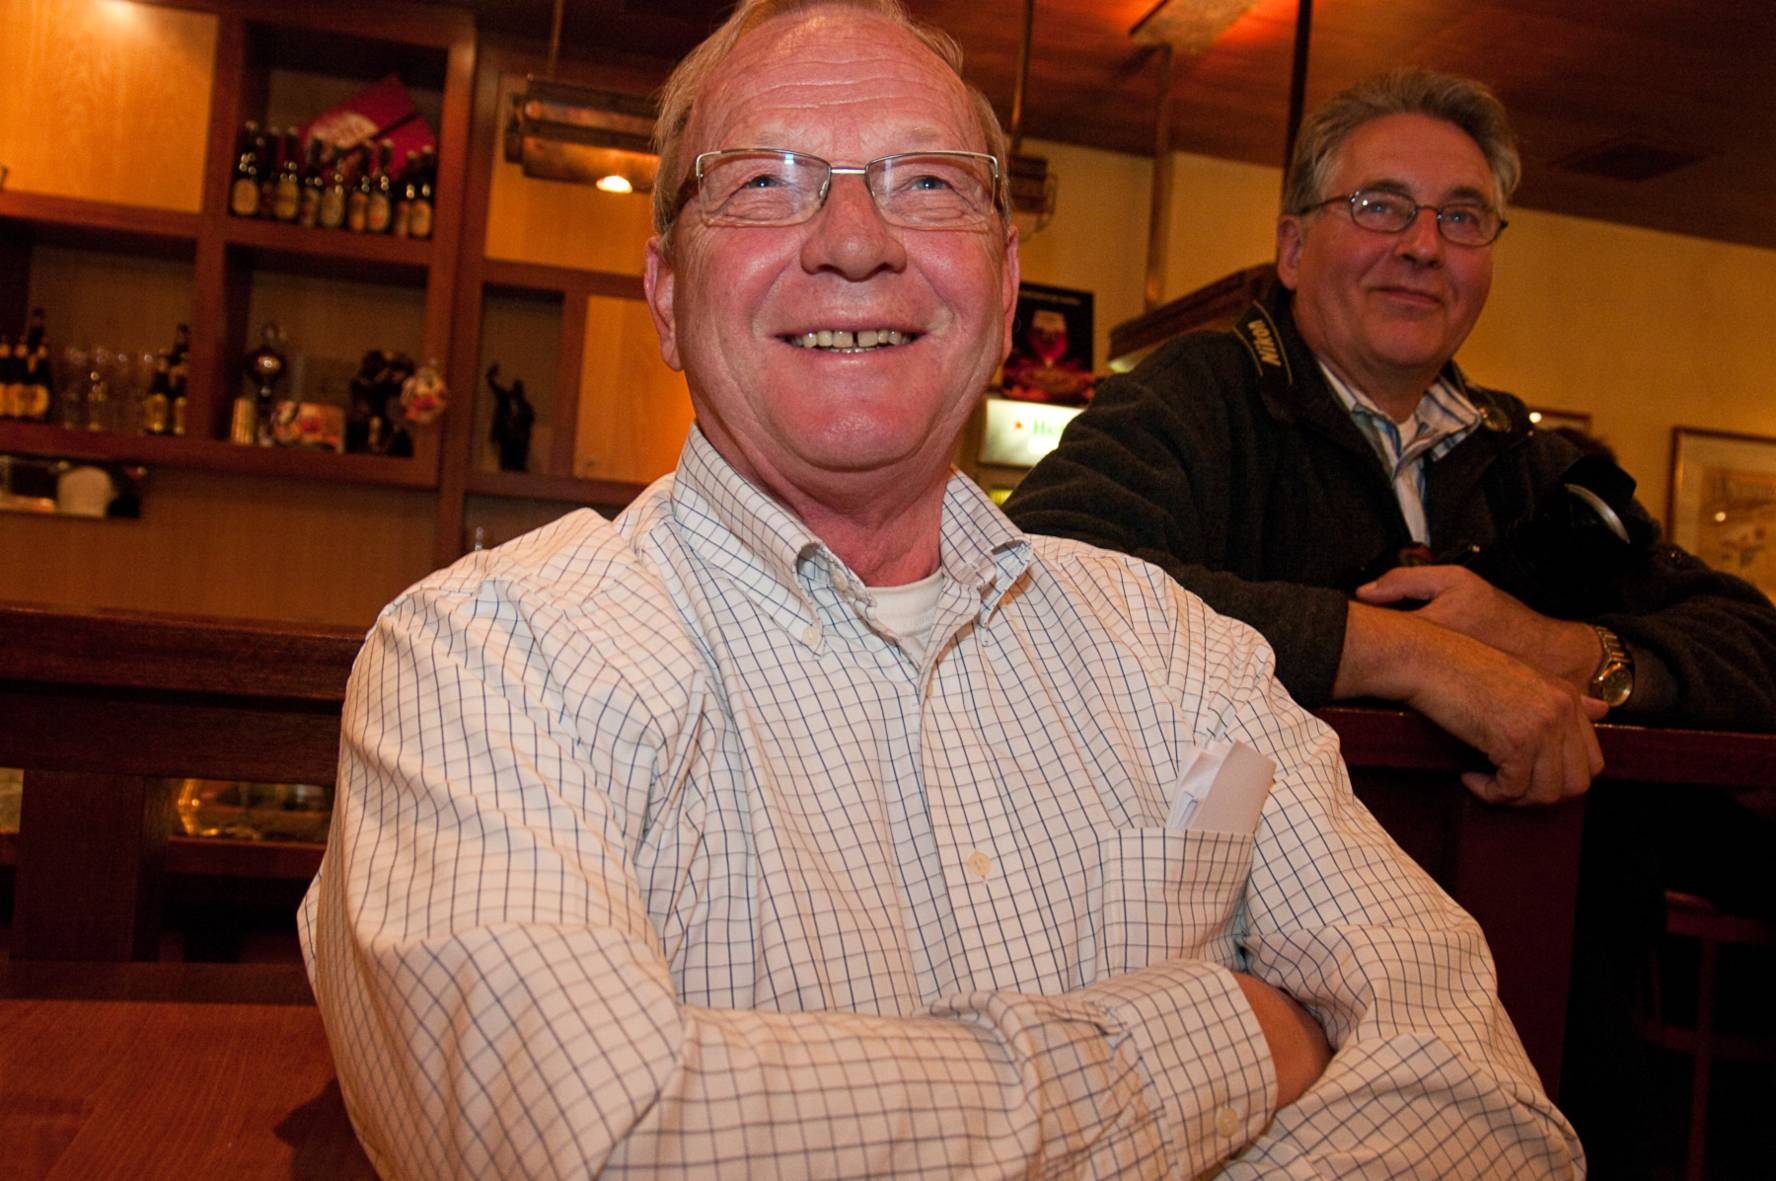 LekkersteBockBier2010 (108 of 172)